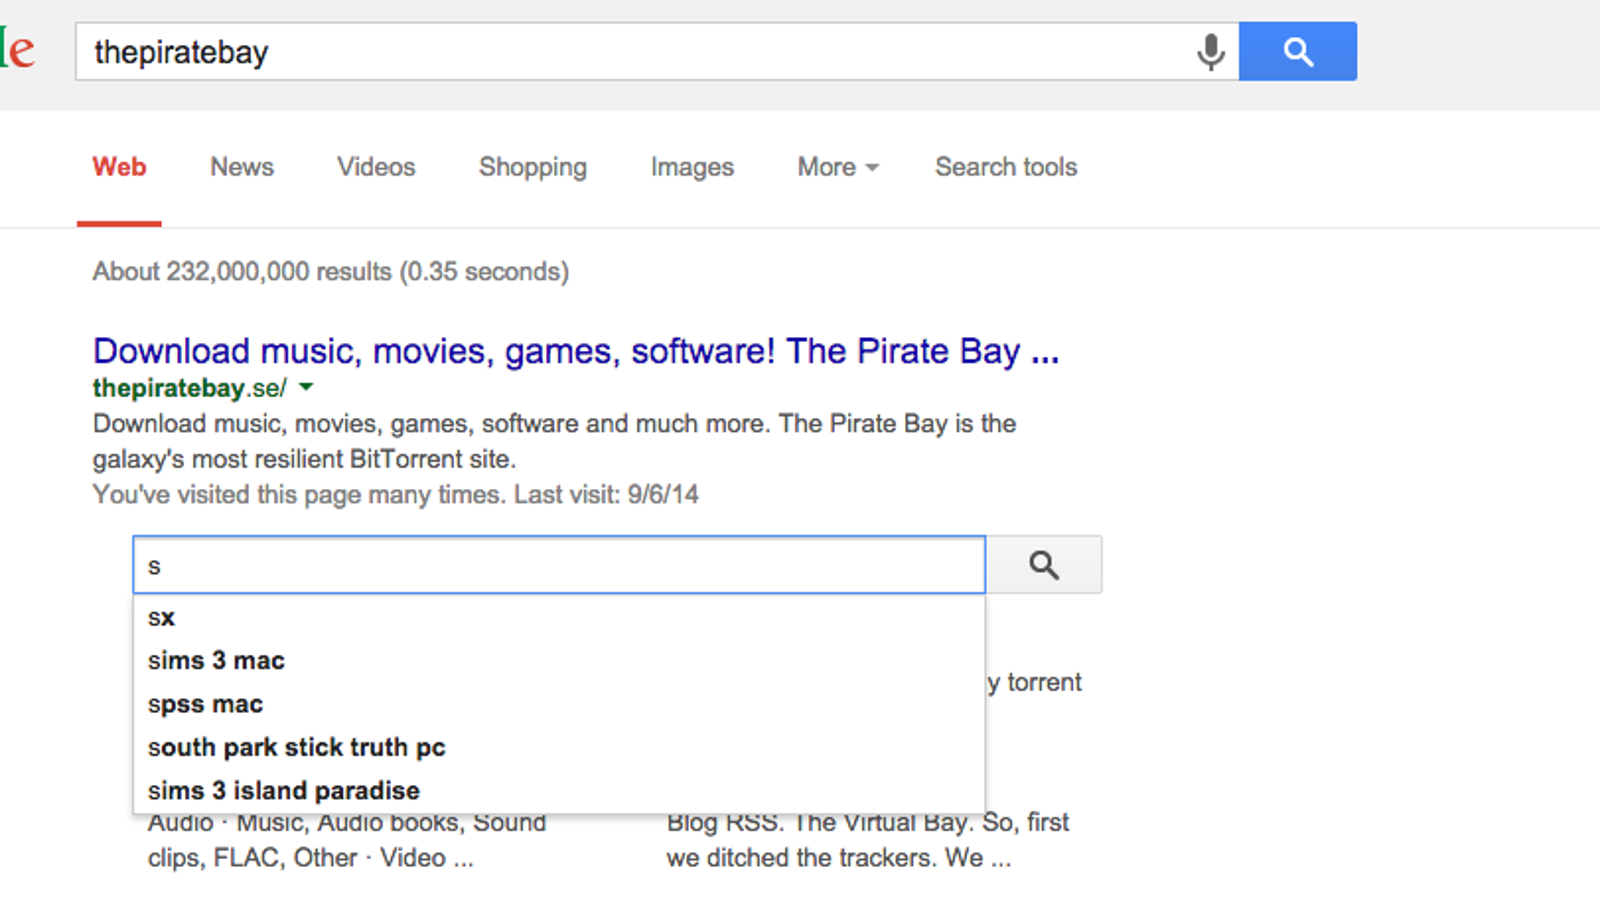 pirate bay download music movies games software